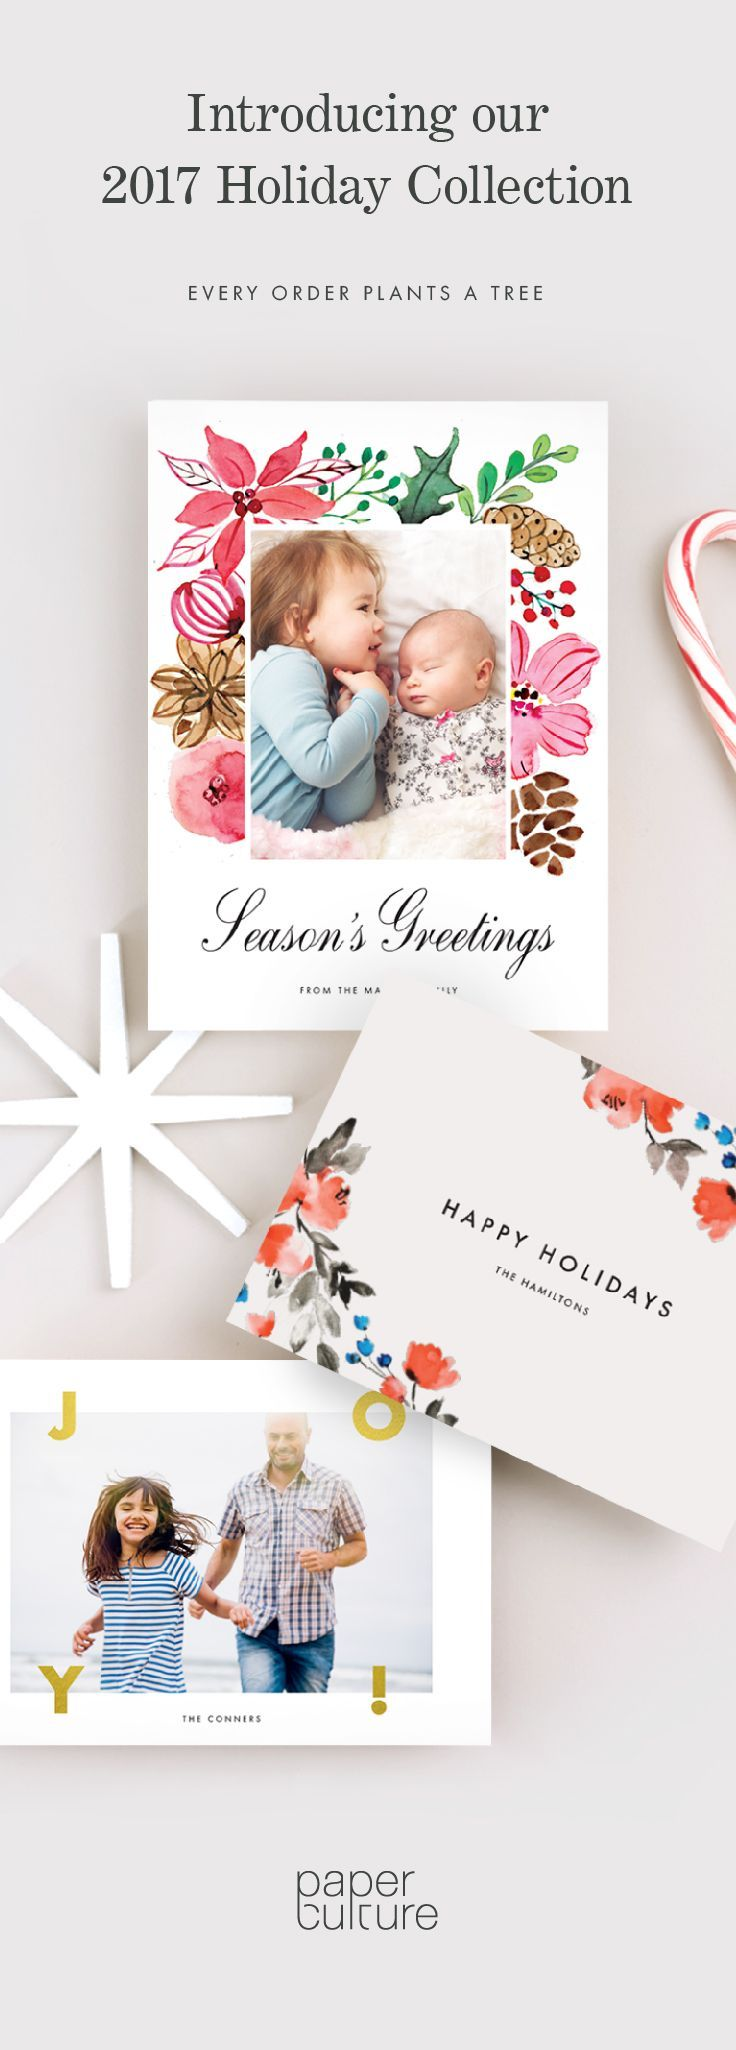 45 Best Paper Party Images On Pinterest Christmas Eve Noche Buena